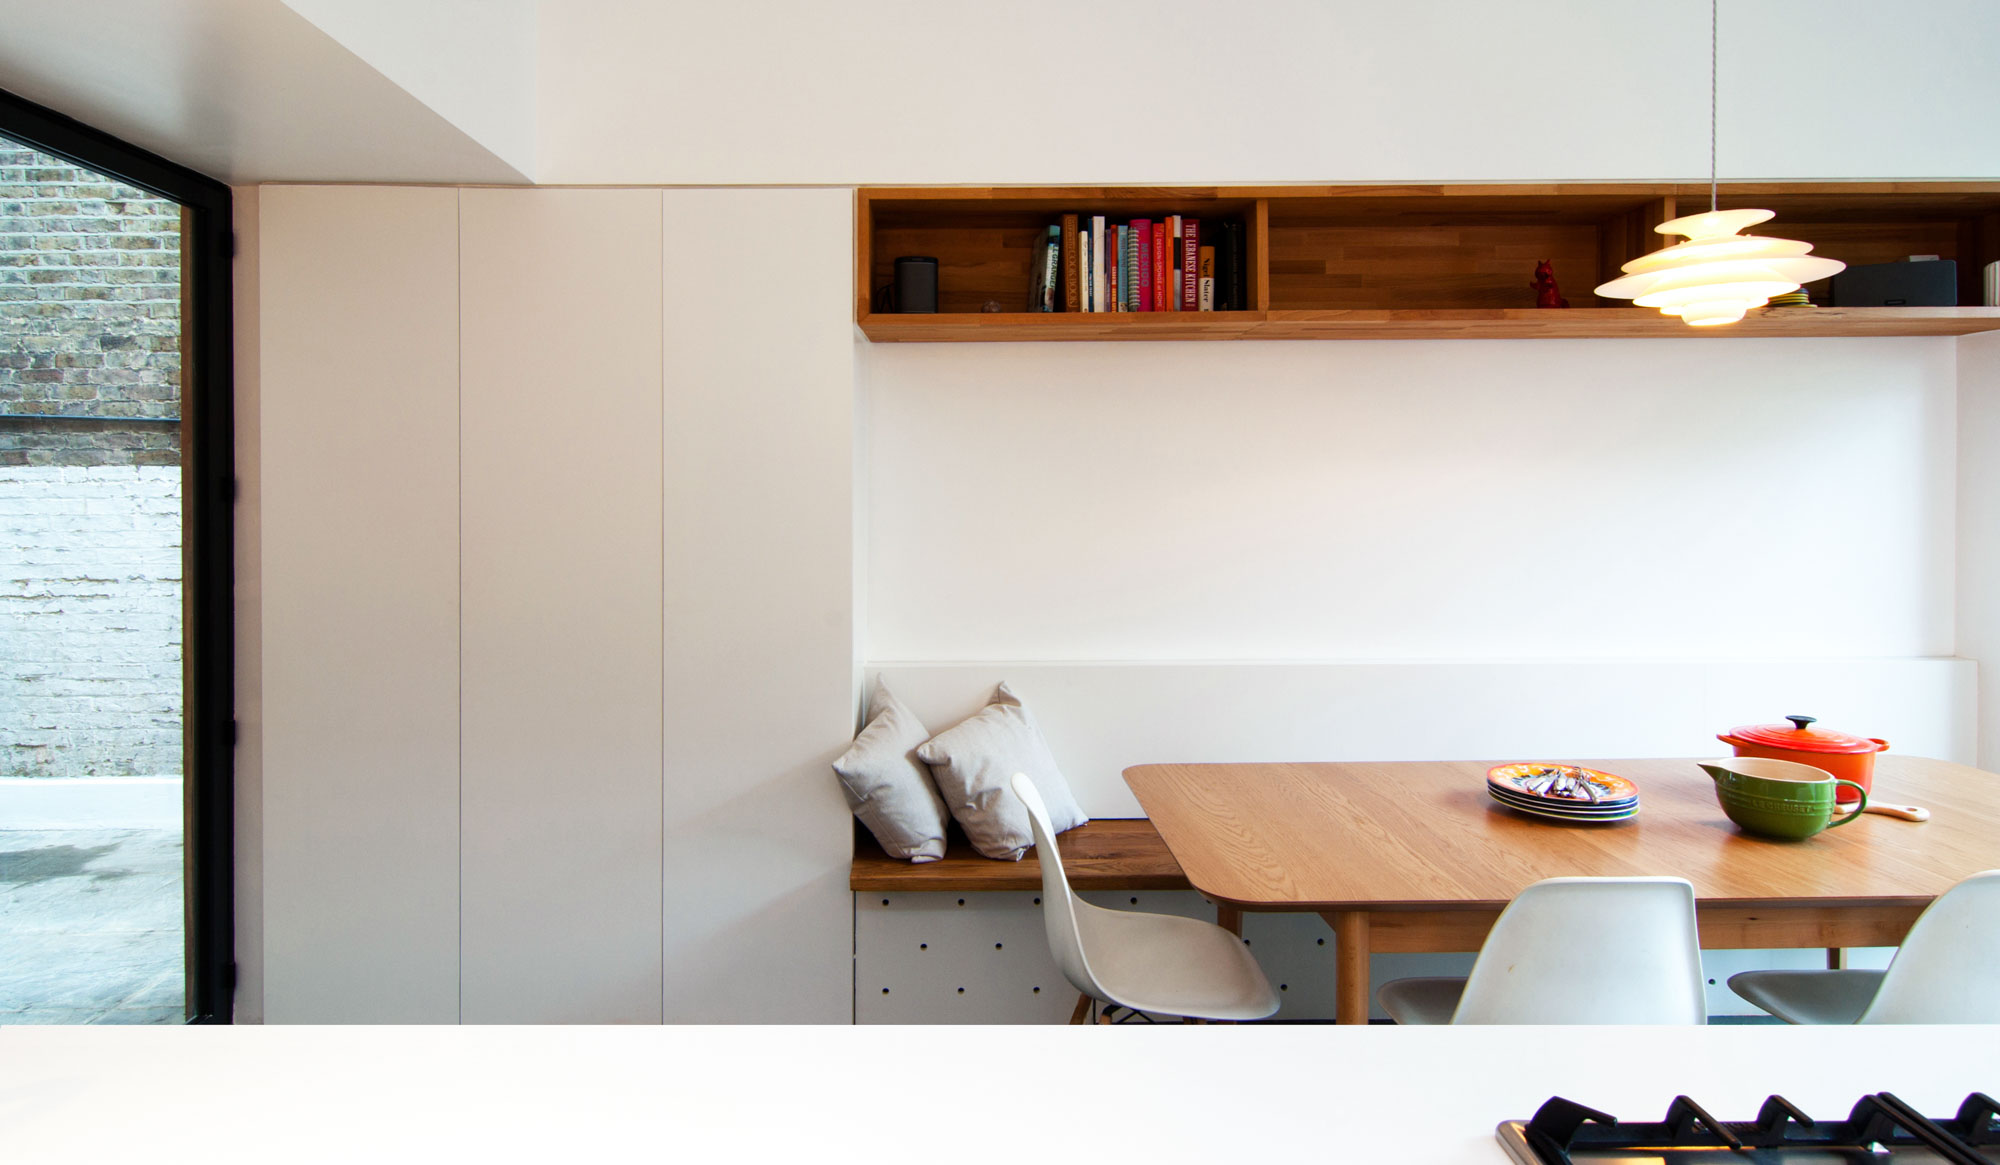 New kitchen extension highlighting key details such as the timber bookshelf and bench within the white contemporary storage cabinets.